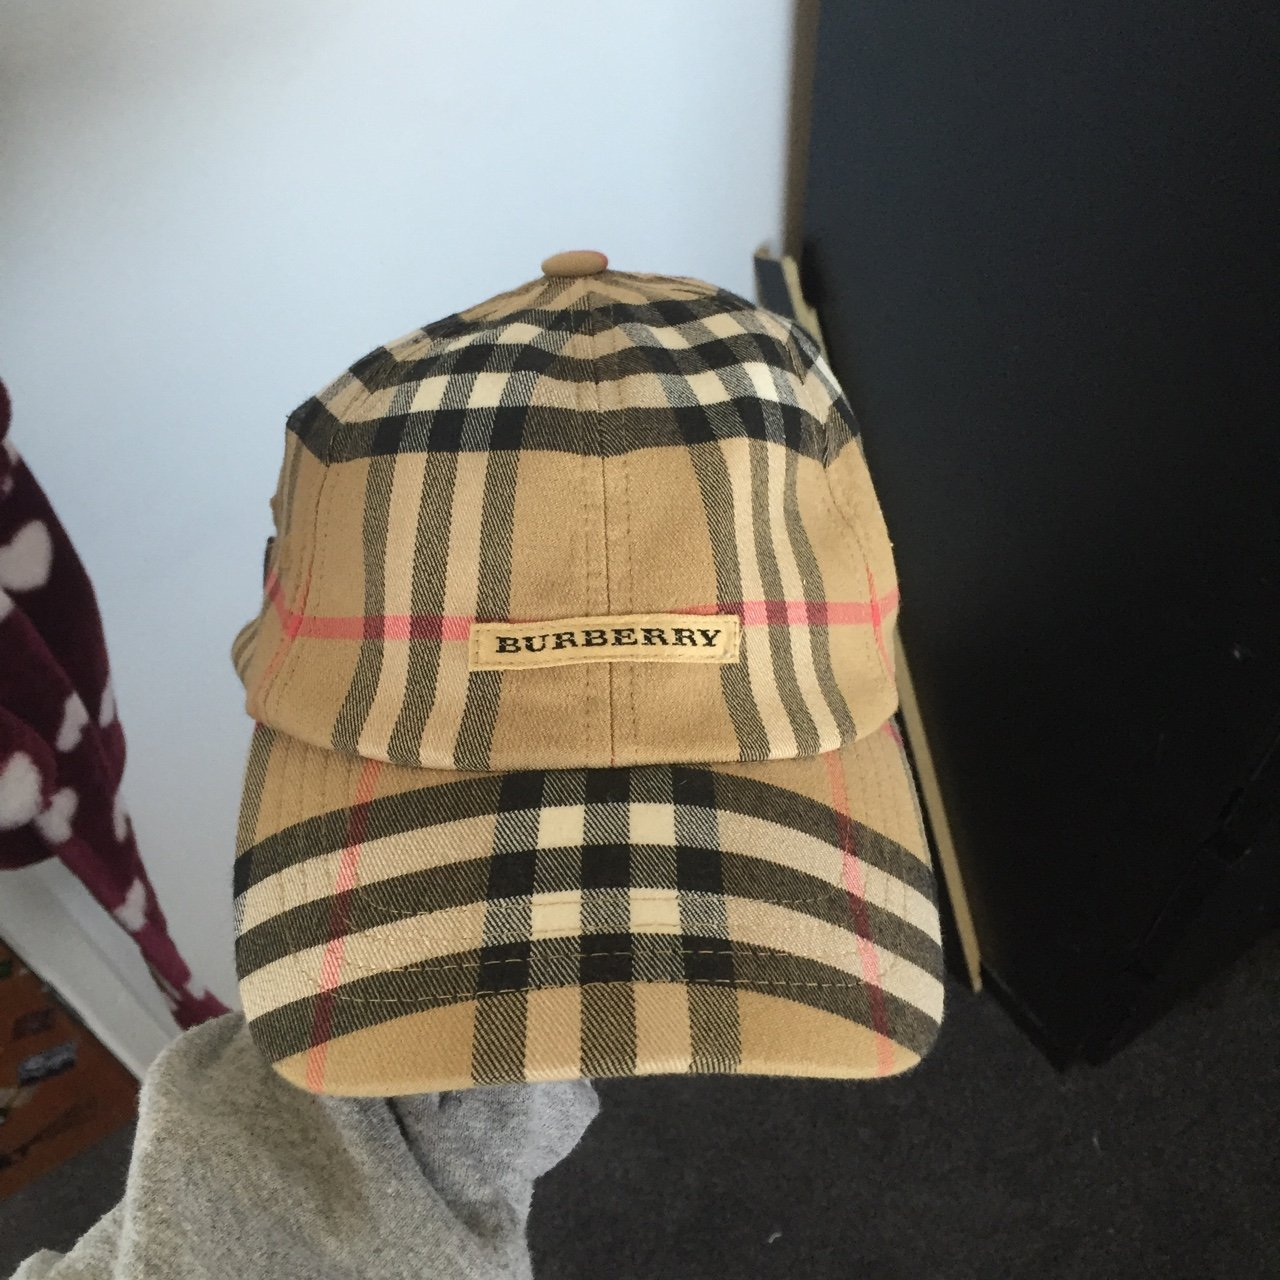 Burberry nova check golf hat cap good condition - Depop 70d607169e5